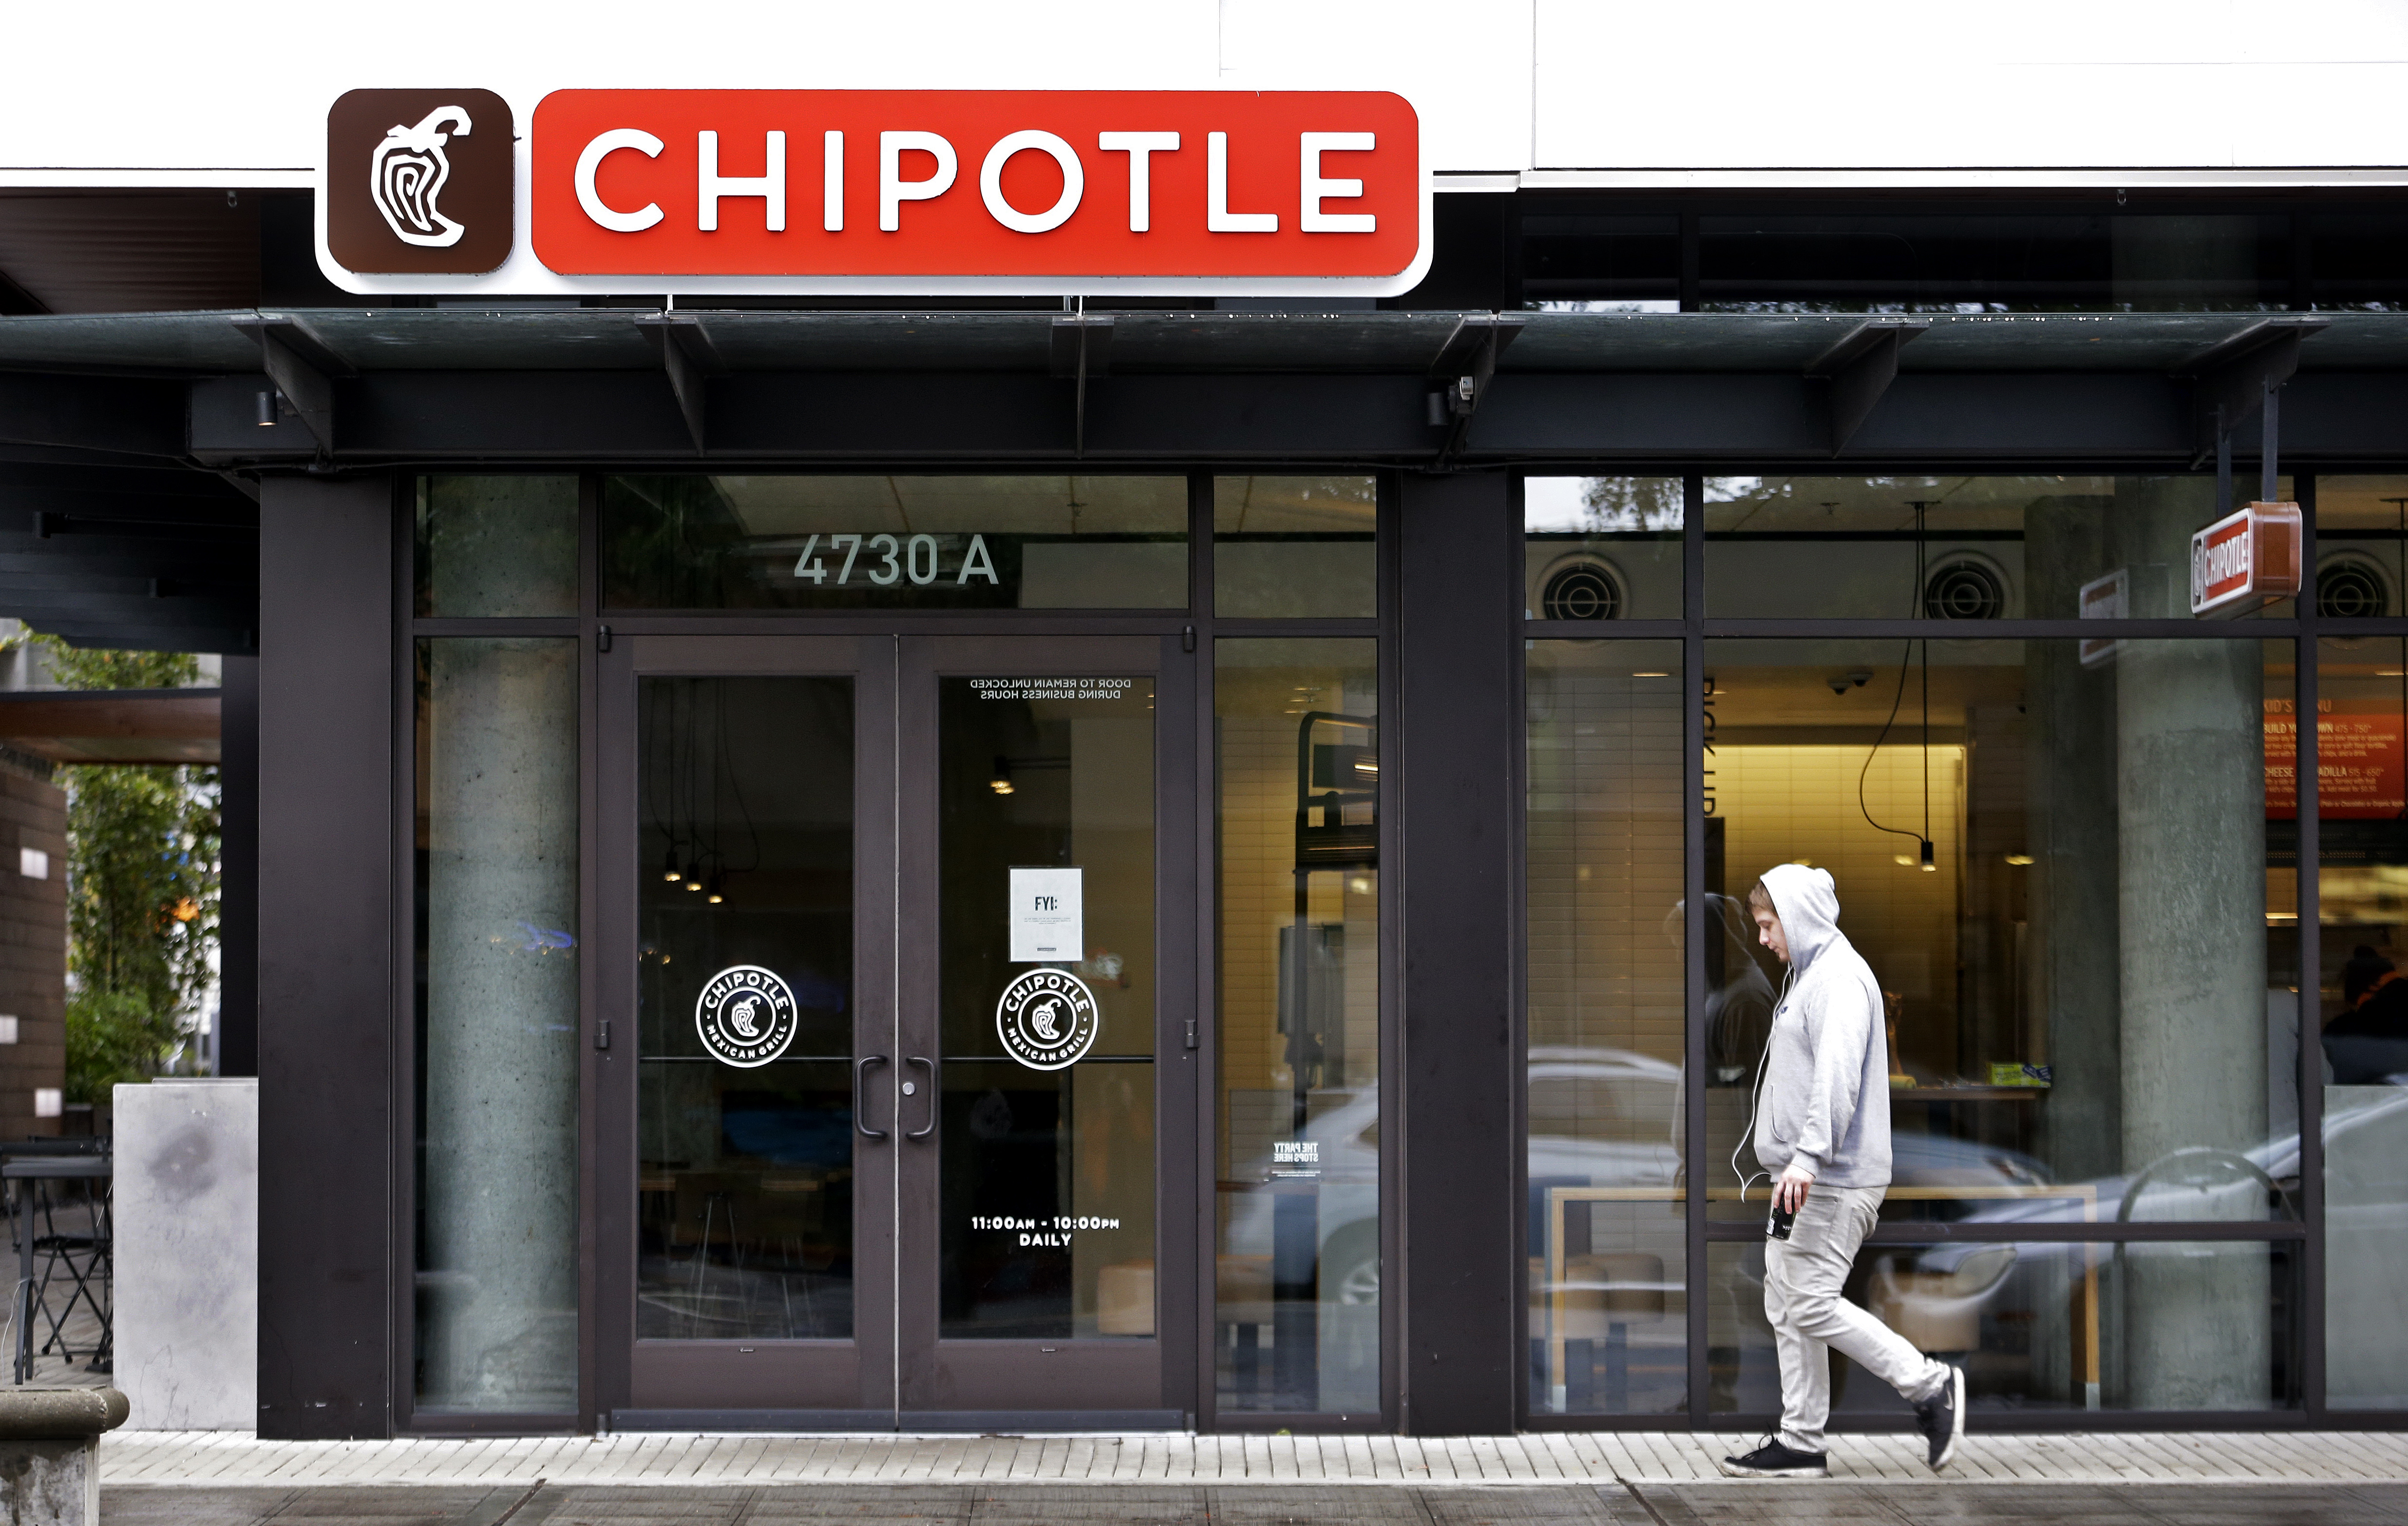 Chipotle closes pacific northwest locations